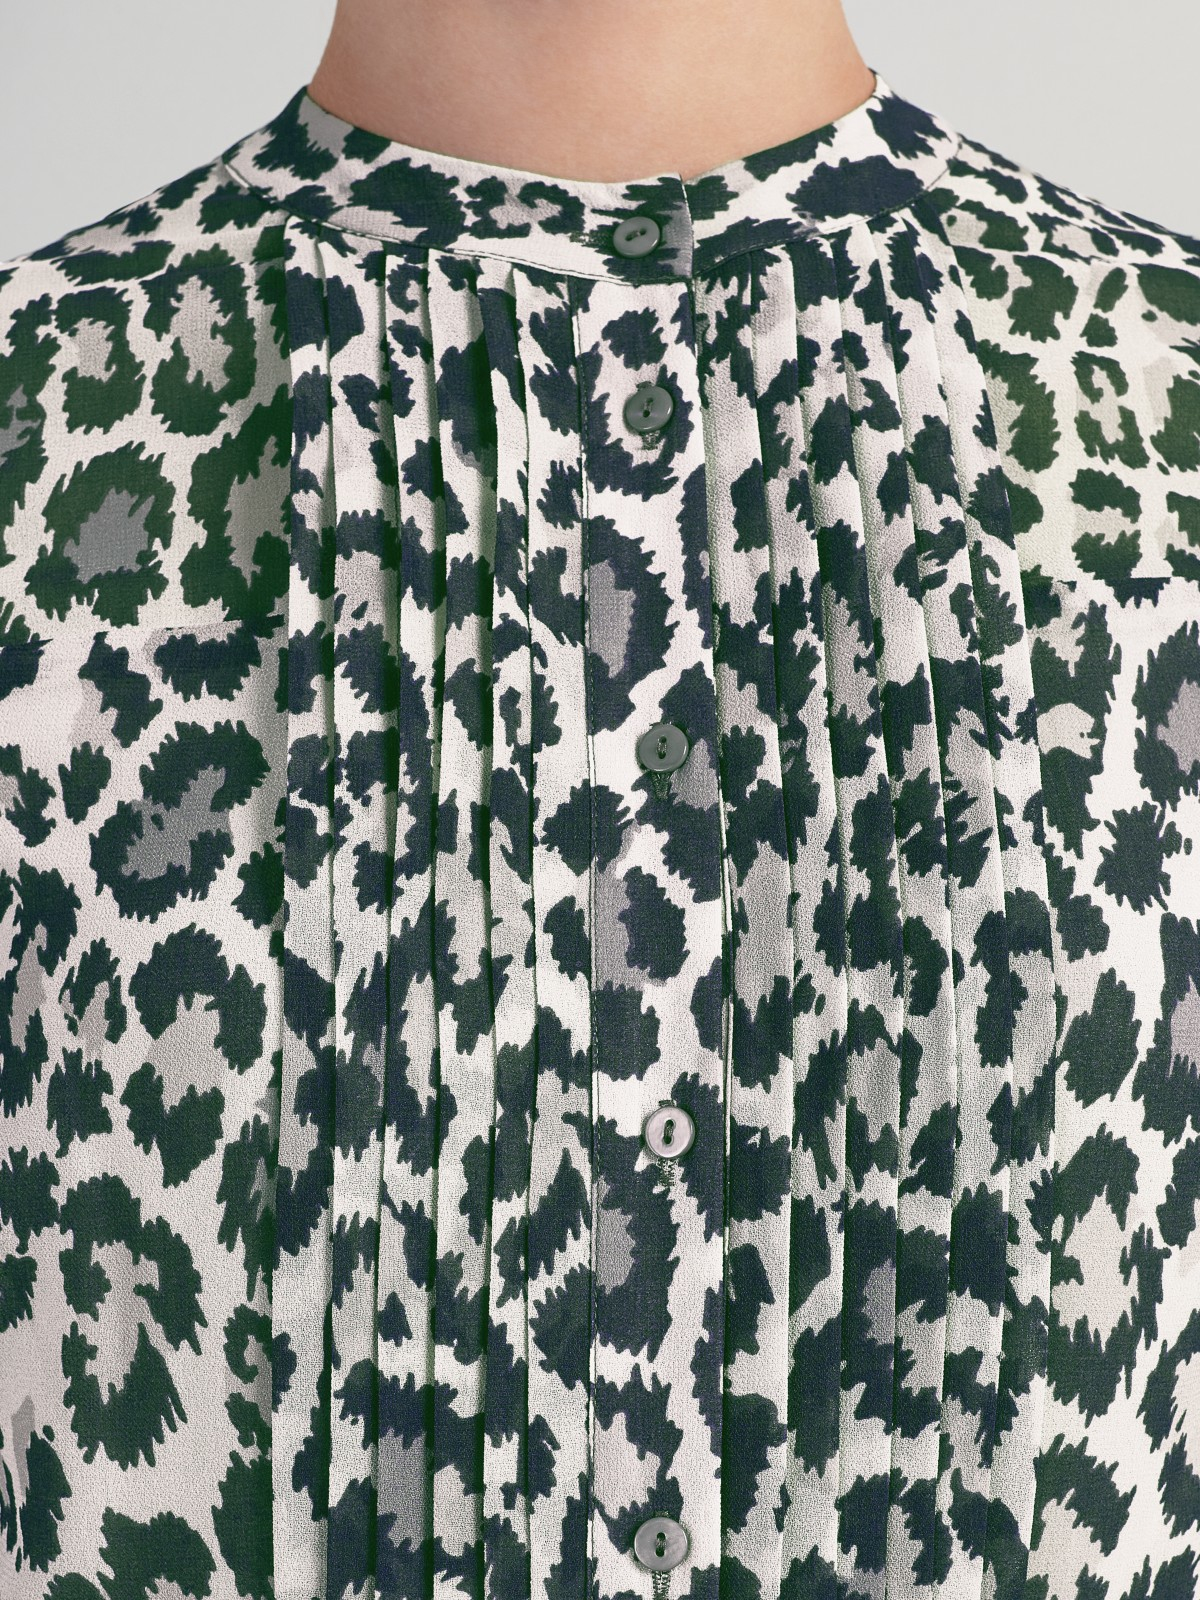 Somerset by Alice Temperley Animal Print Maxi Dress in Green - Lyst 12b03ea85